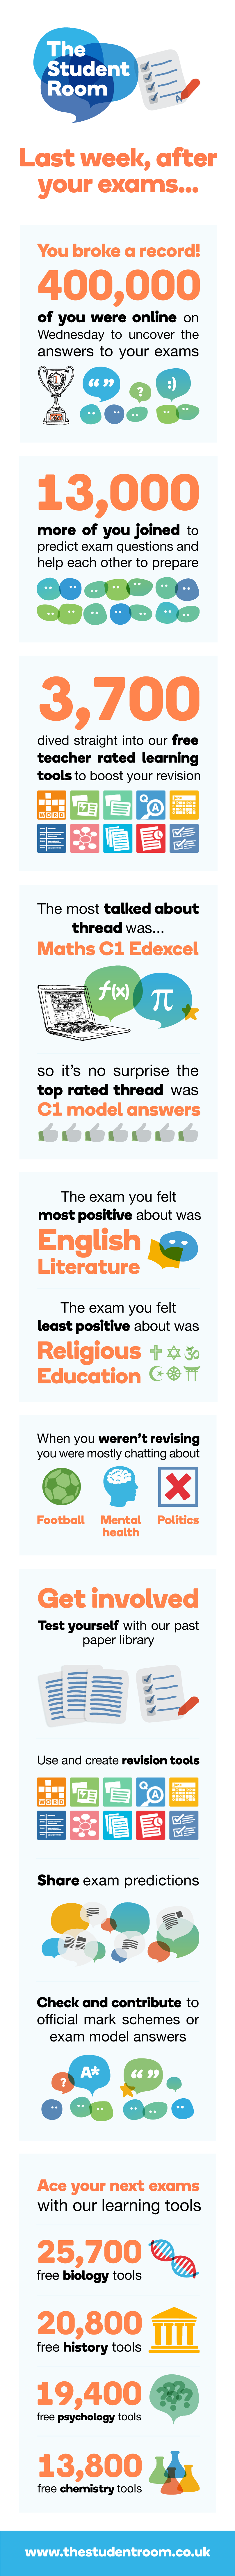 File:Exam-infographic-FINAL.png